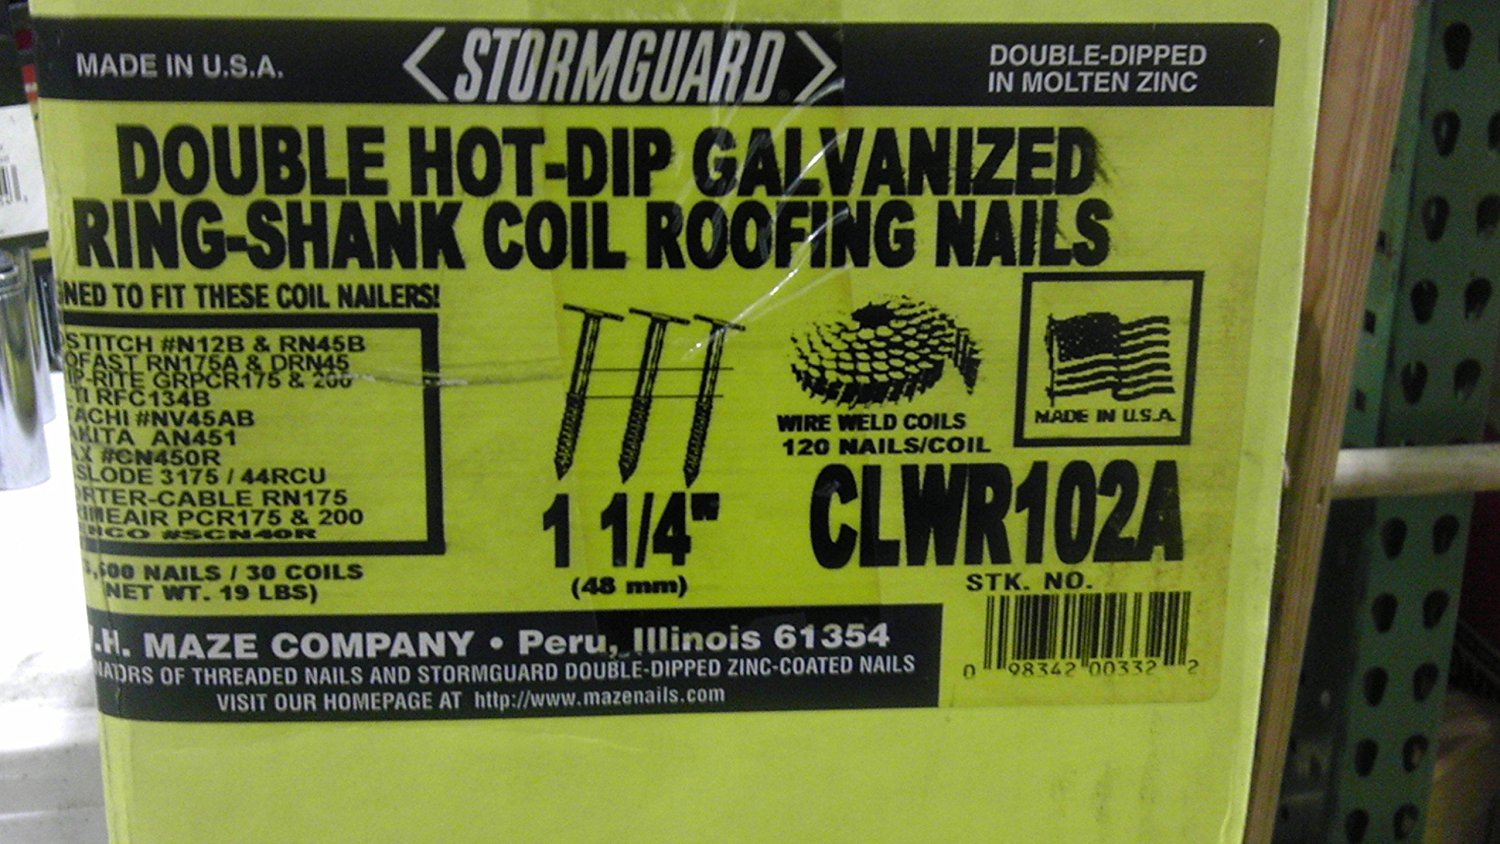 "CLWR102A STORMGUARD DOUBLE HOT-DIP GALVANIZED RING-SHANK COIL ROOFING NAILS 1-1/4"" 3,600 NAILS / 30 COILS WIRE WELD COILS 120 NAILS/COIL"